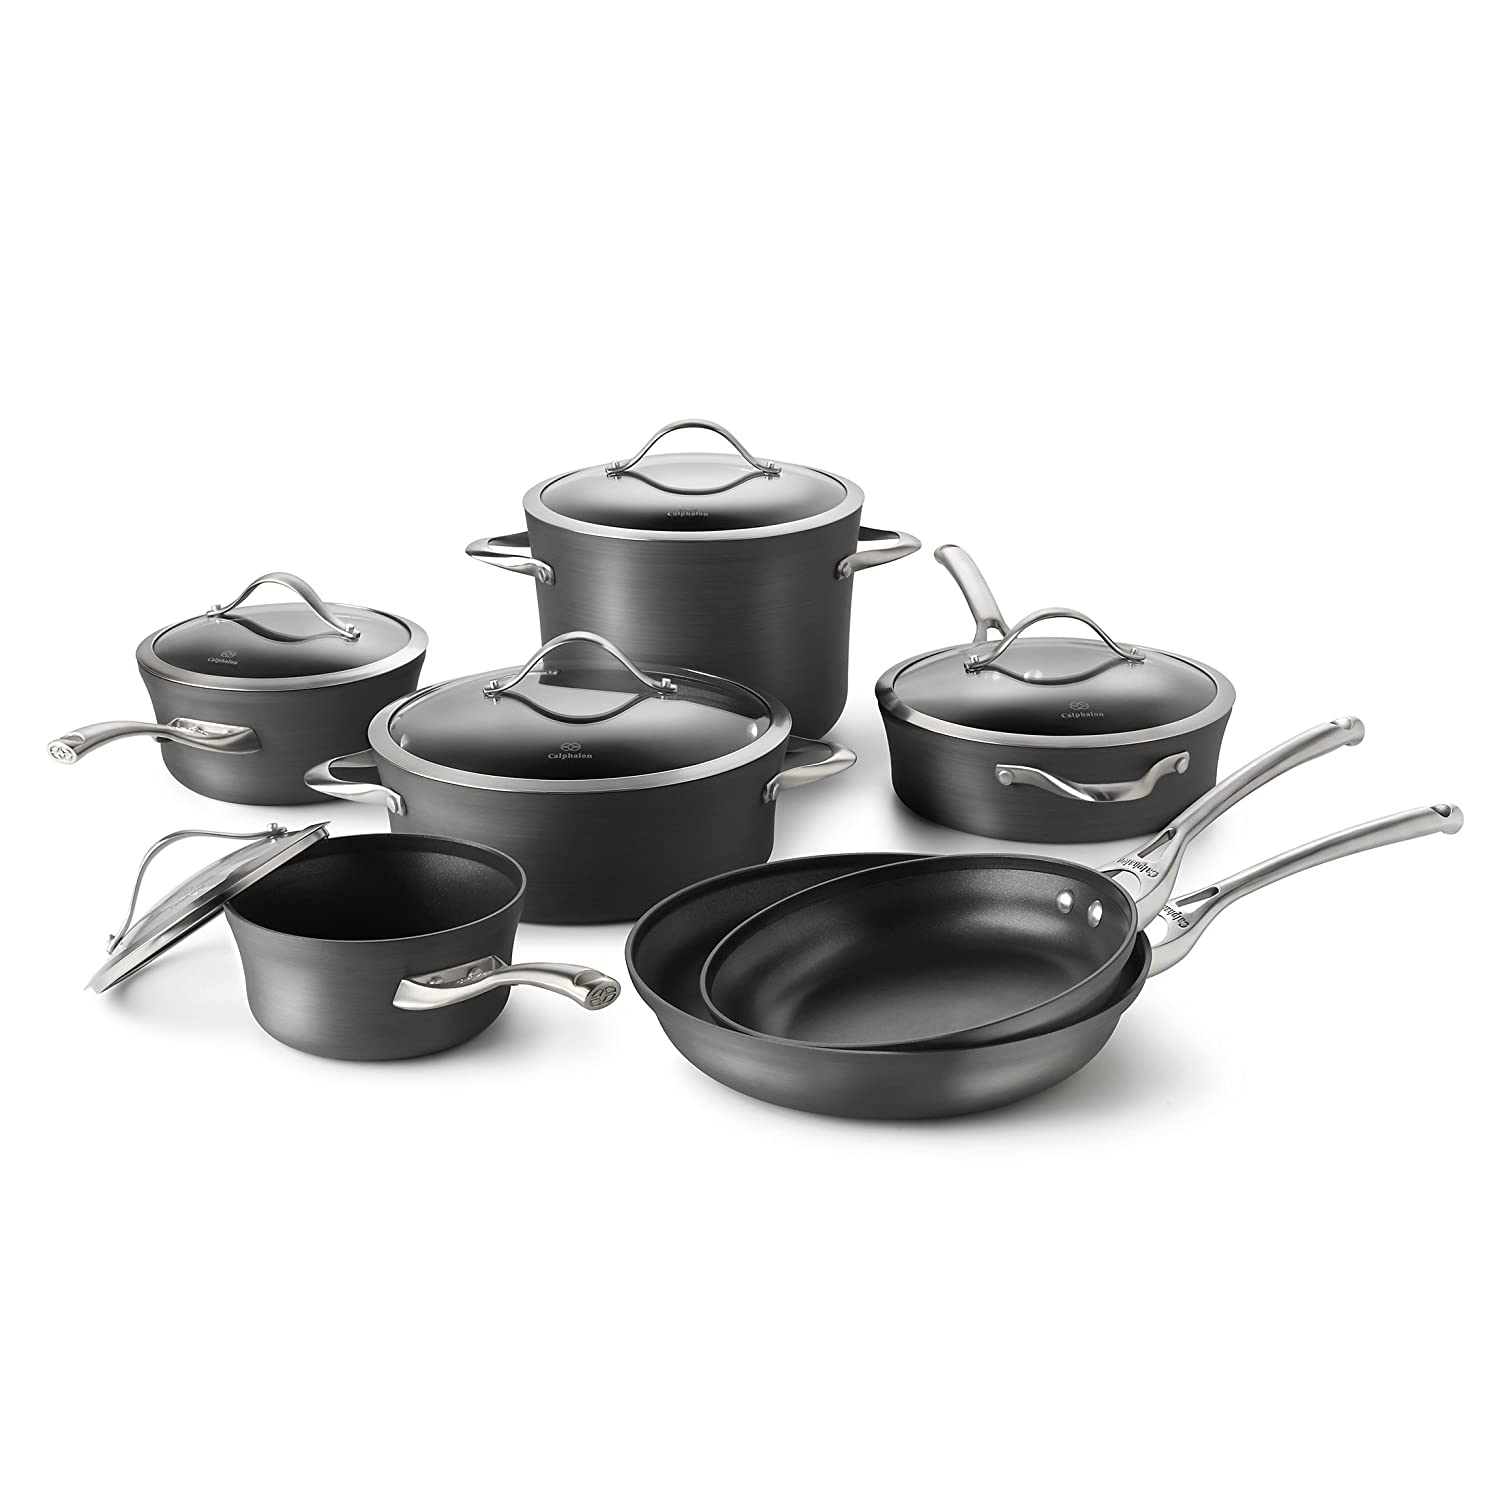 Calphalon Aluminum Nonstick Cookware Set